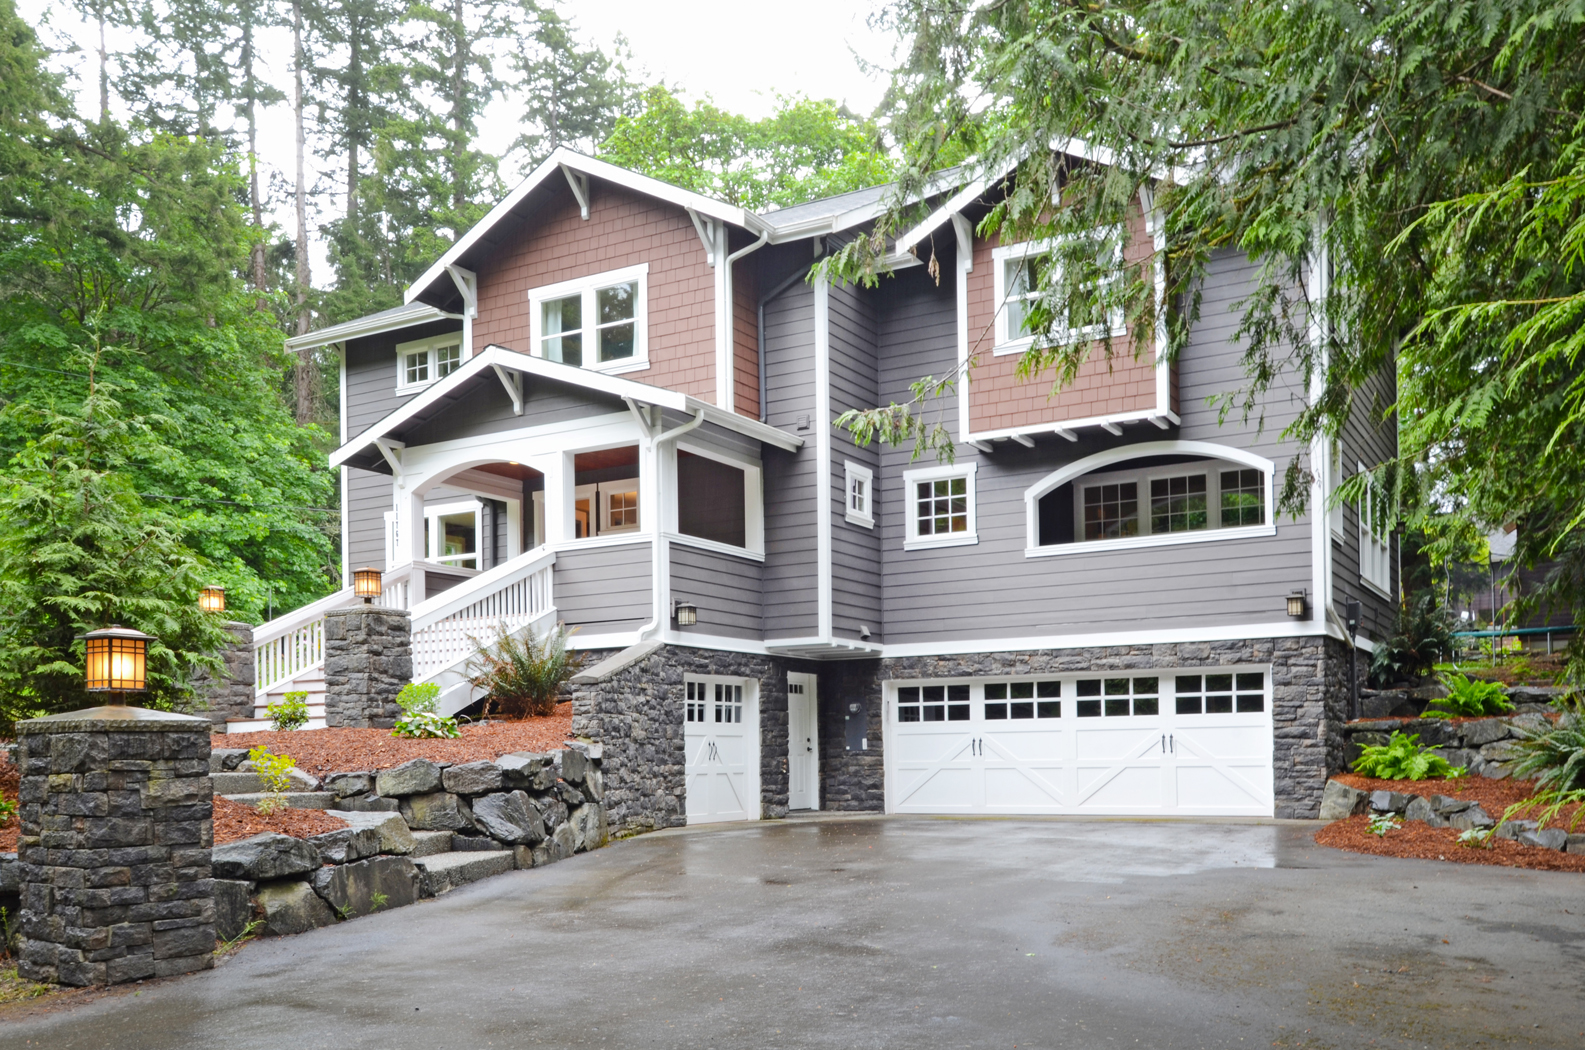 11767 Venice Loop on Bainbridge Island | Listed by Jen Pells